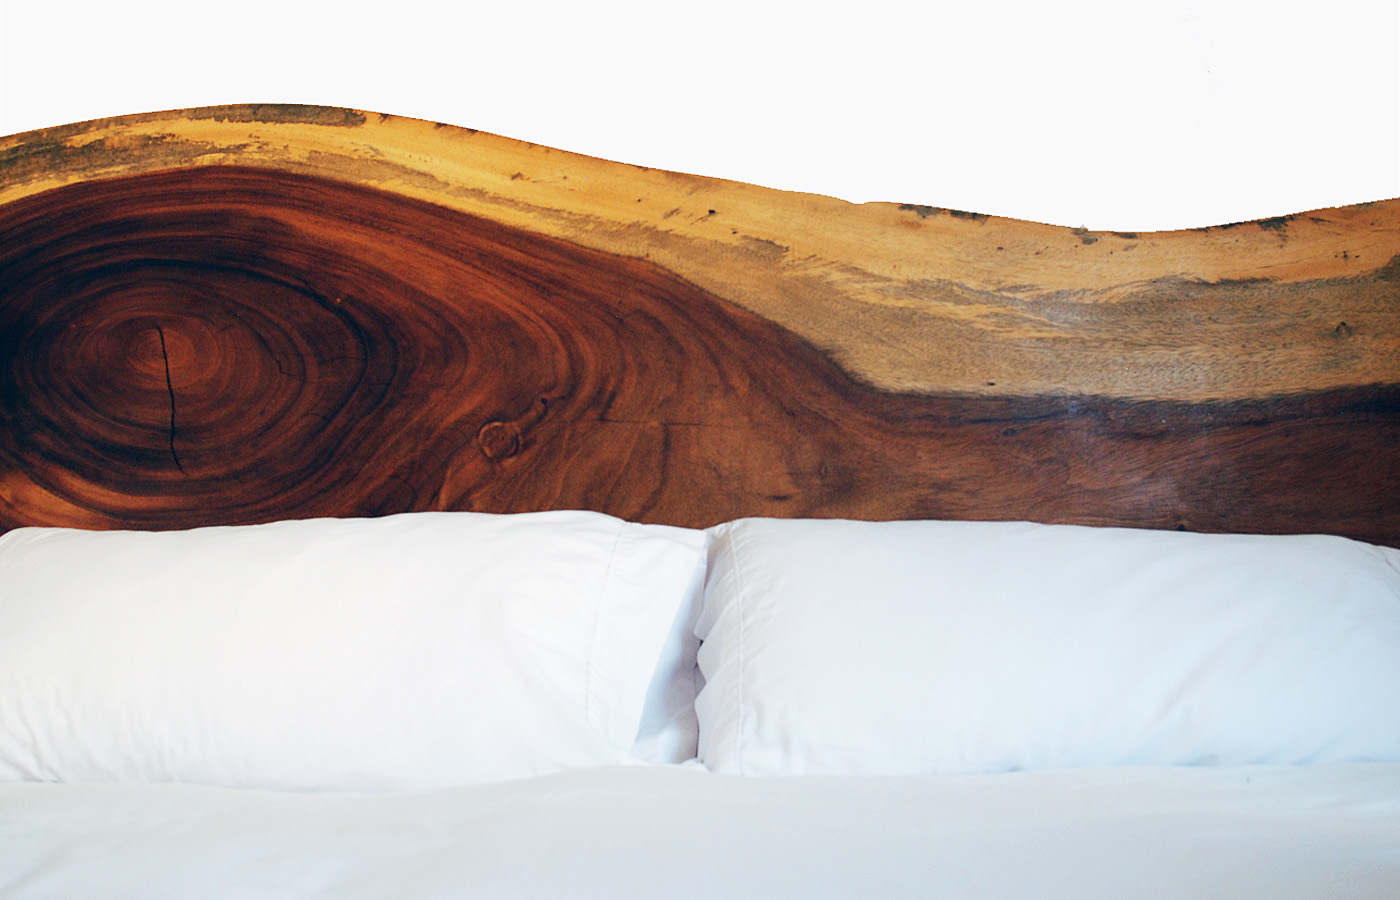 Custom Wooden Beds & Headboards  Parota Modern Designs  Mexico